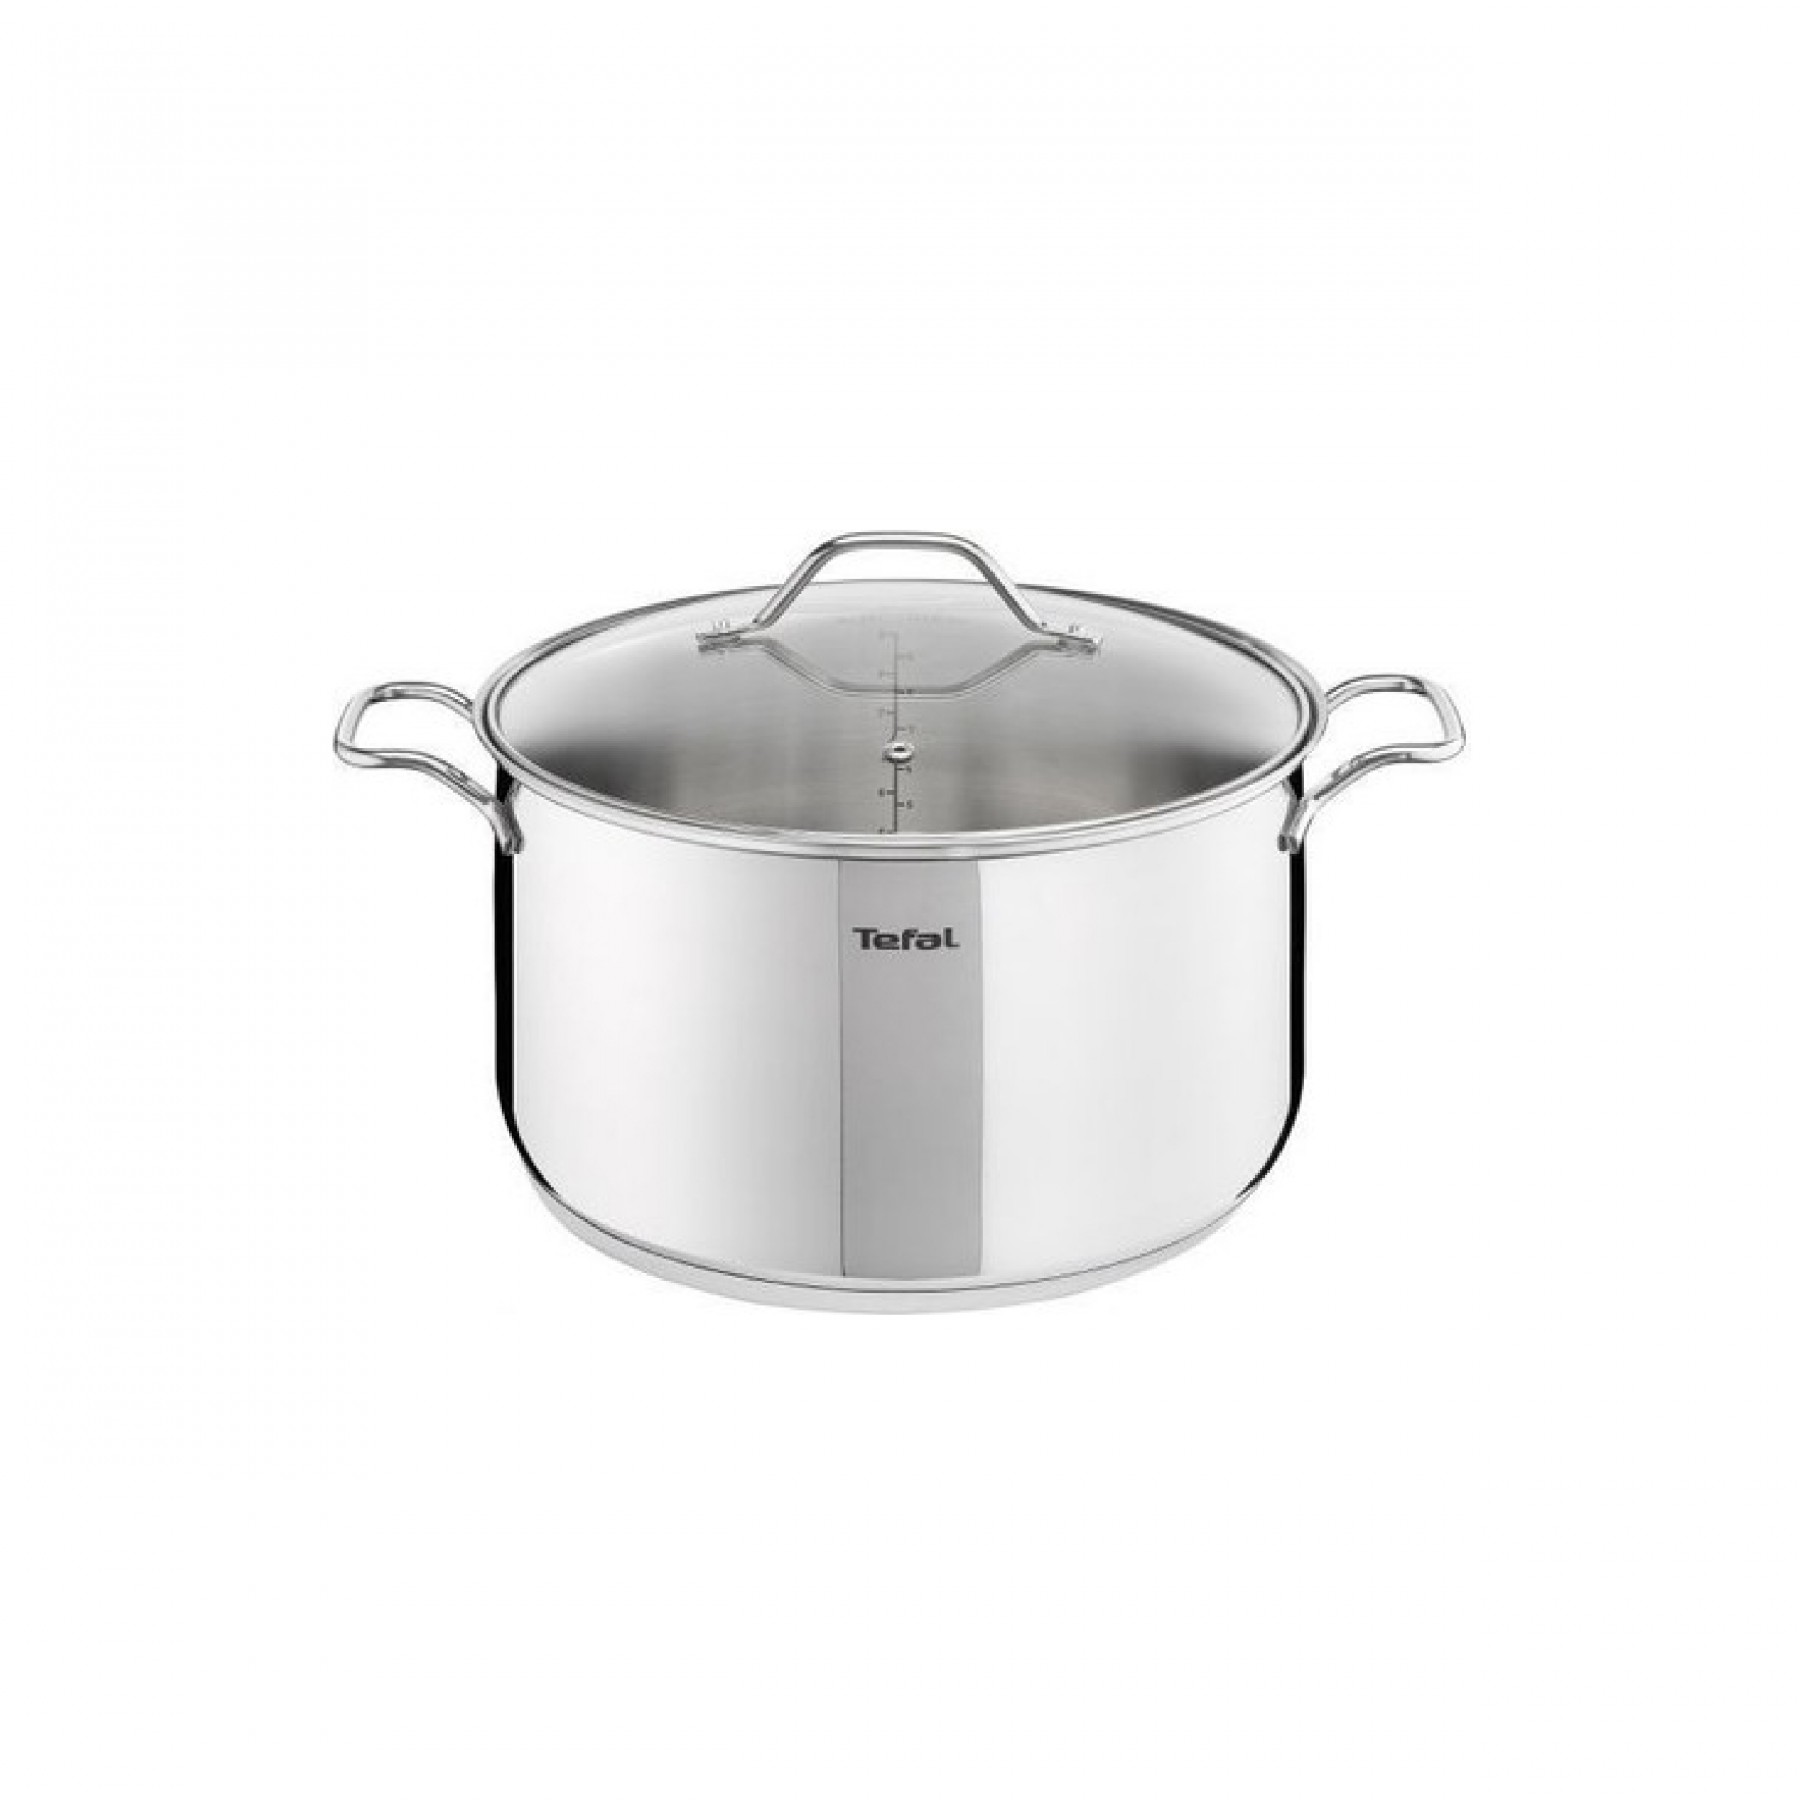 TEFAL STEWPOT INTUITION 28 CM STAINLESS STEEL B9086444